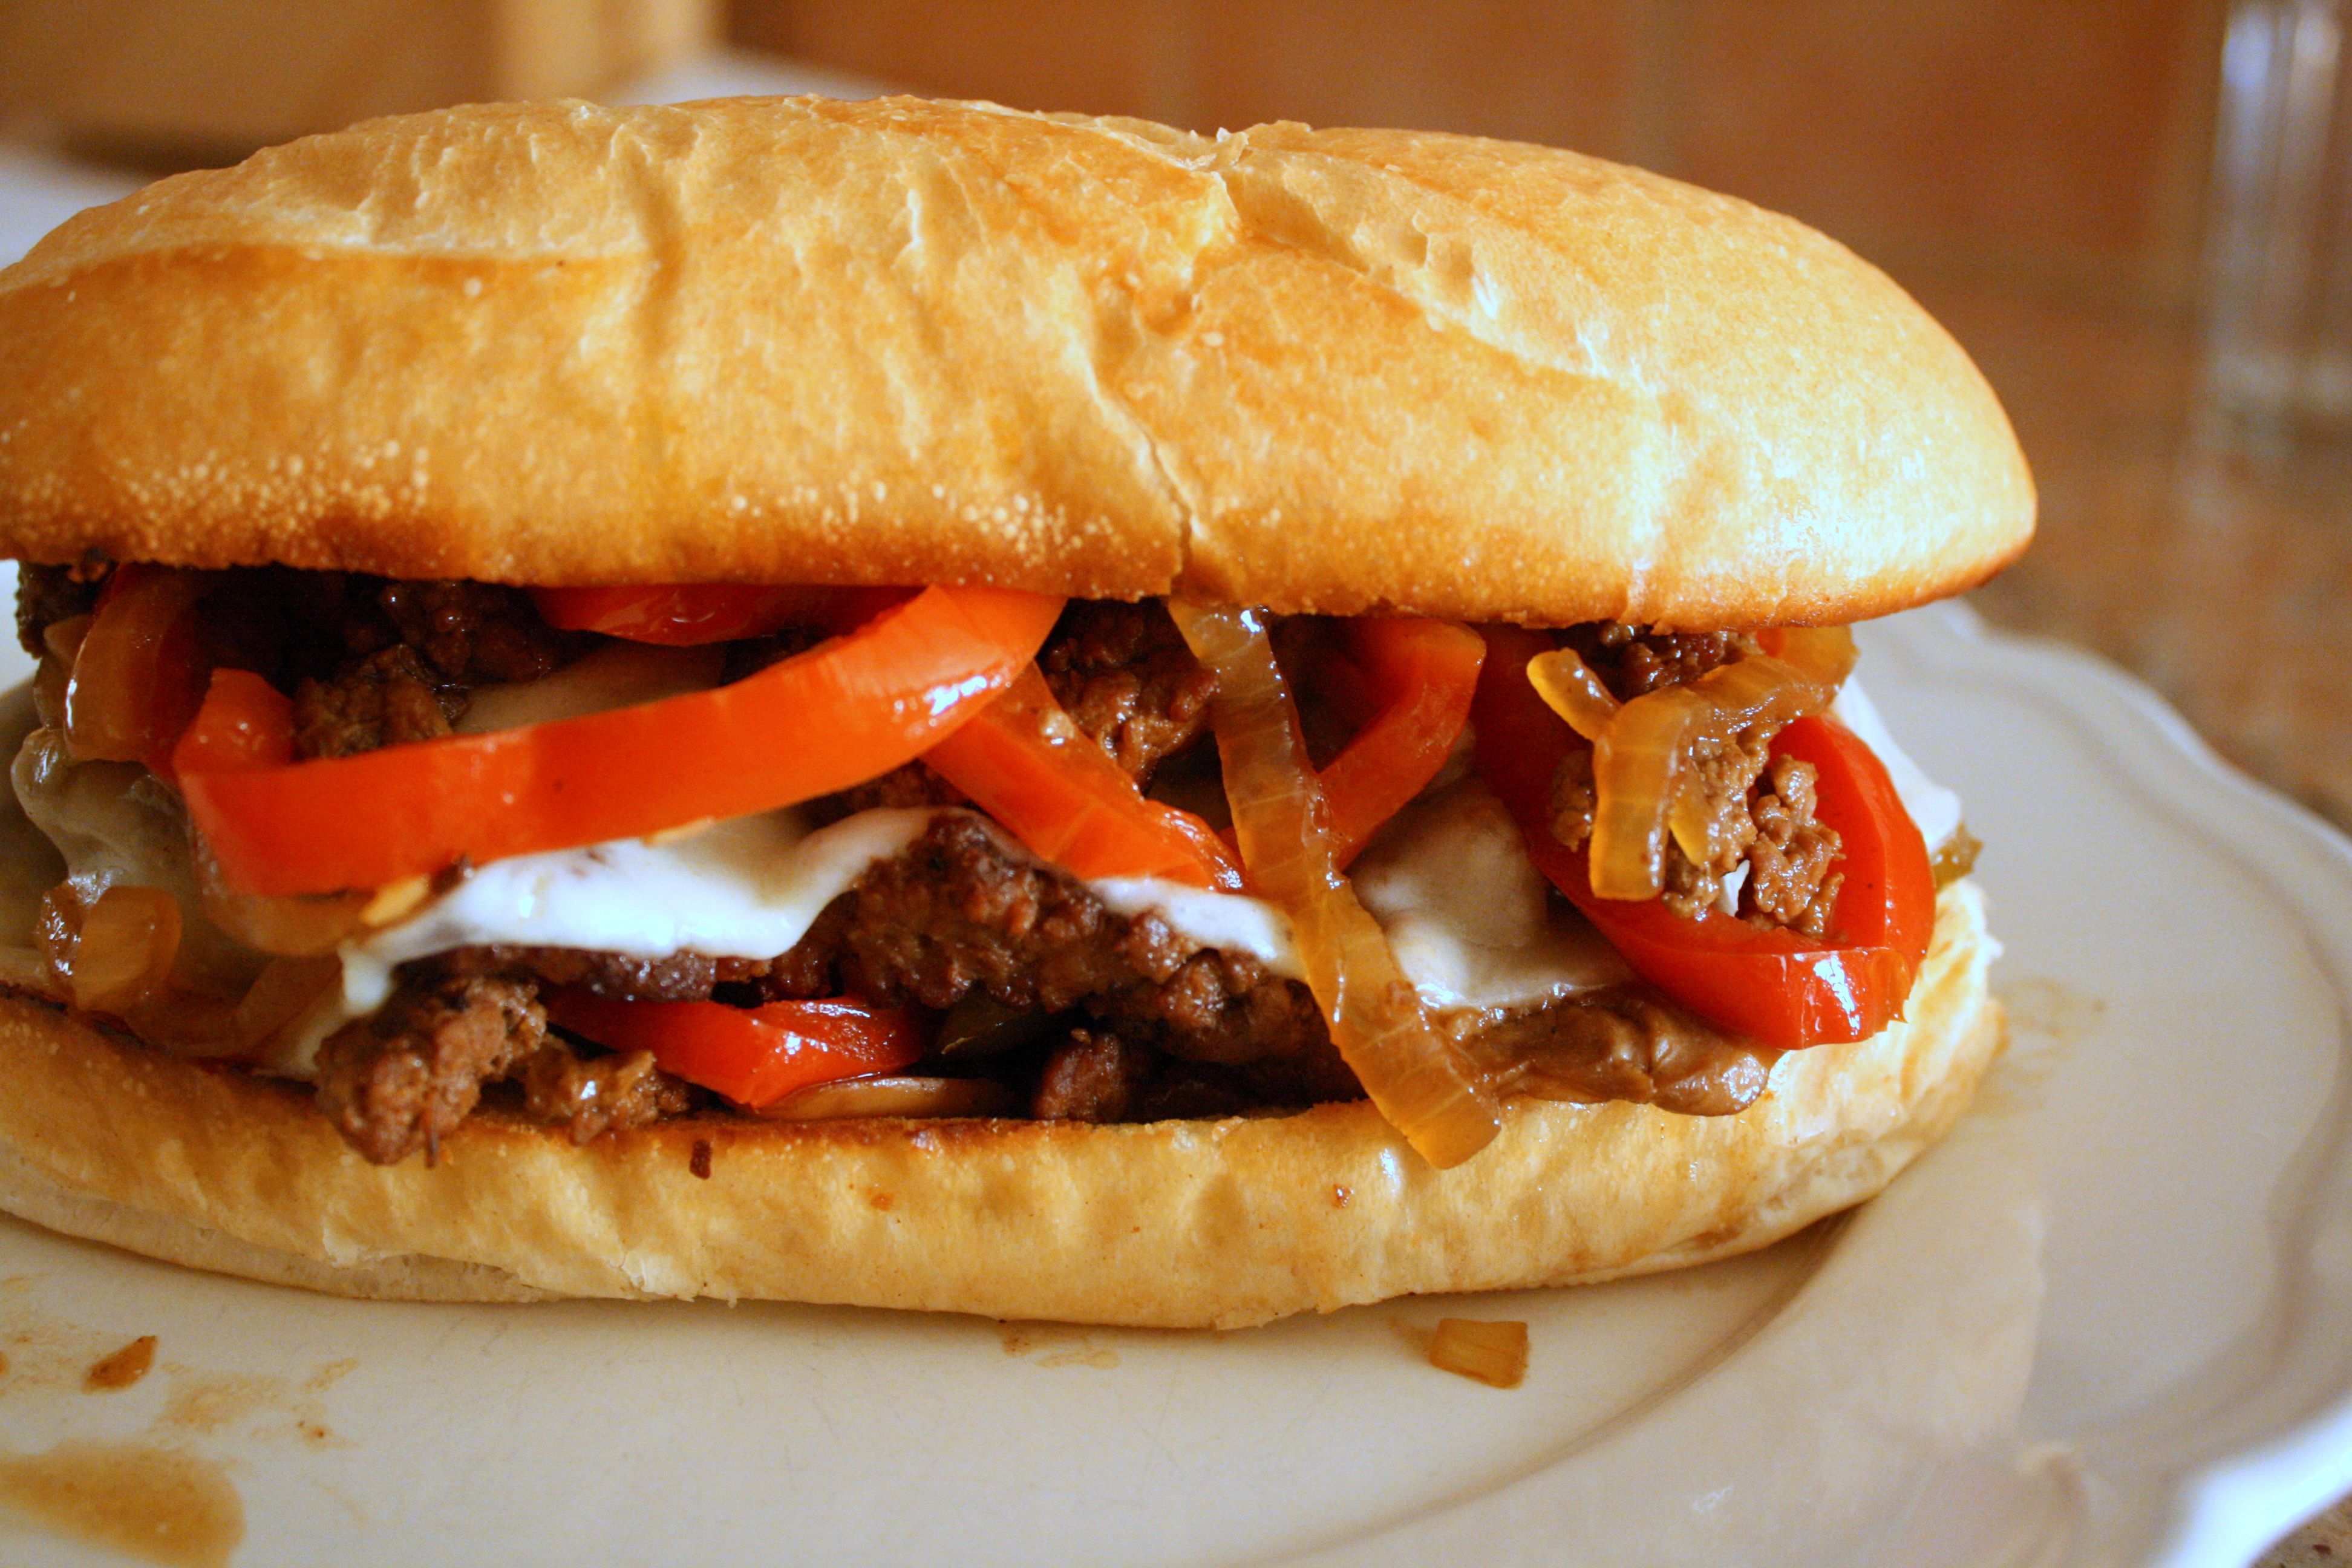 steak sandwich that'll make you slap yo' mama